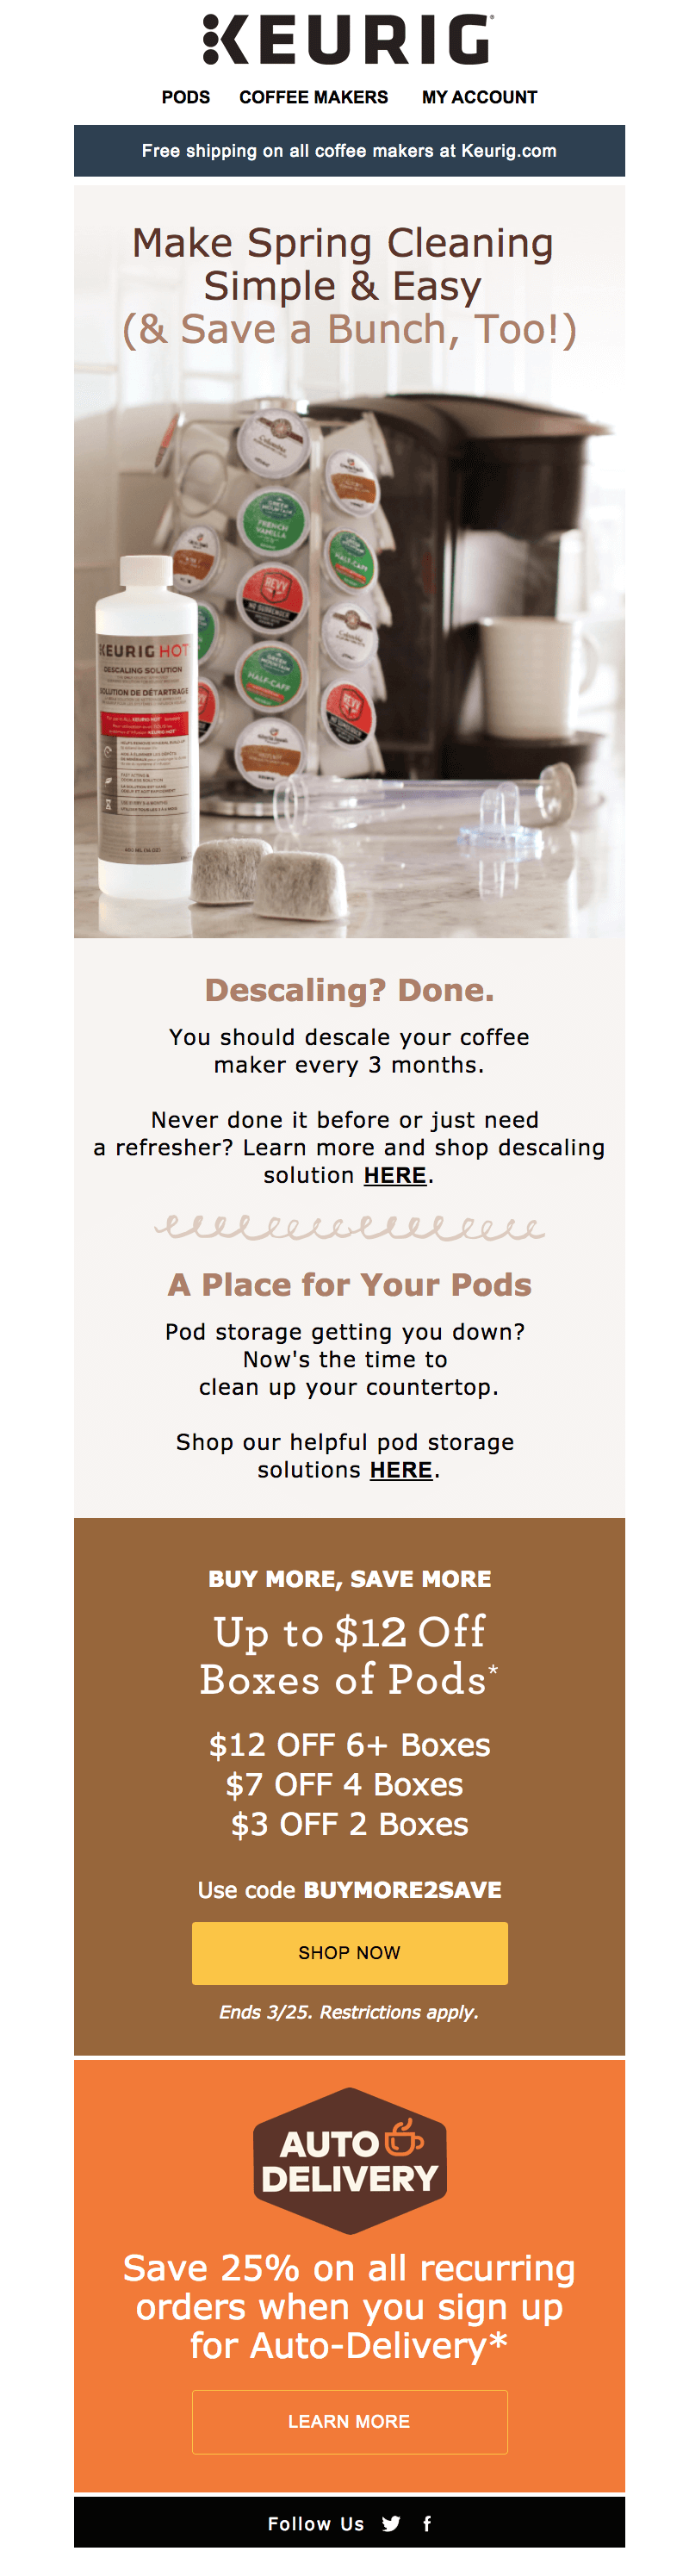 Keurig spring cleaning emails